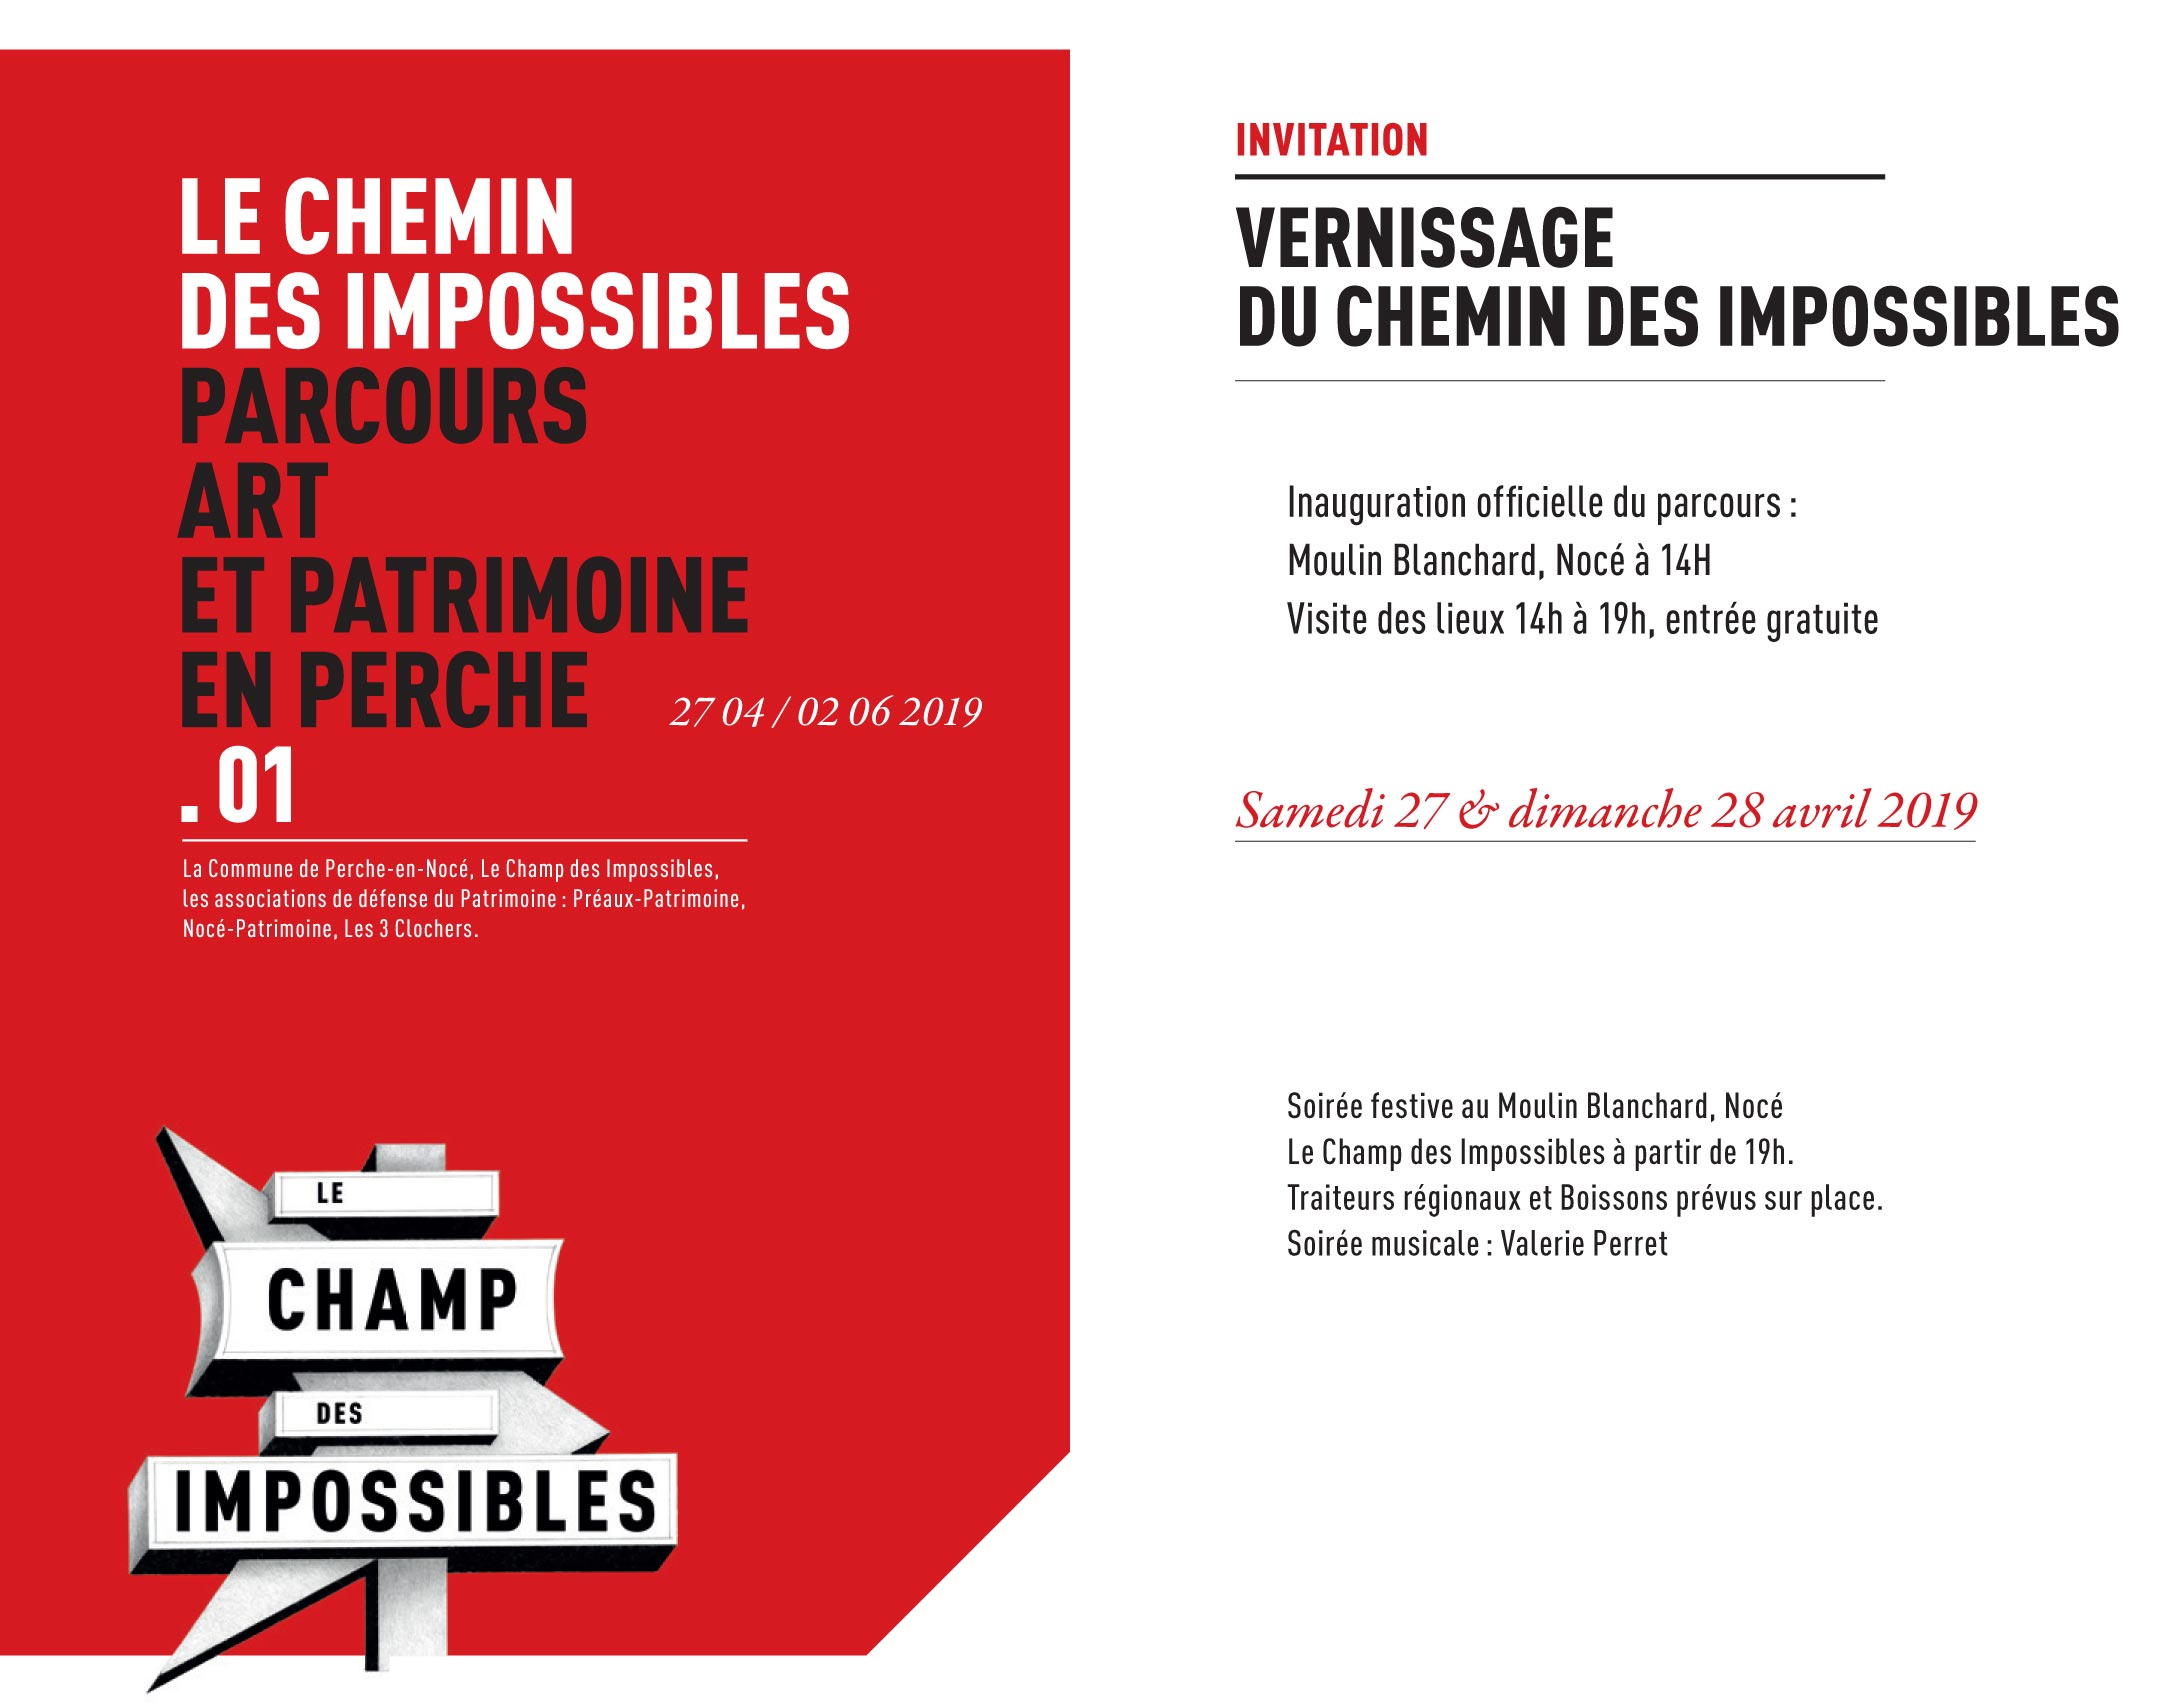 Vernissage du Chemin des Impossibles